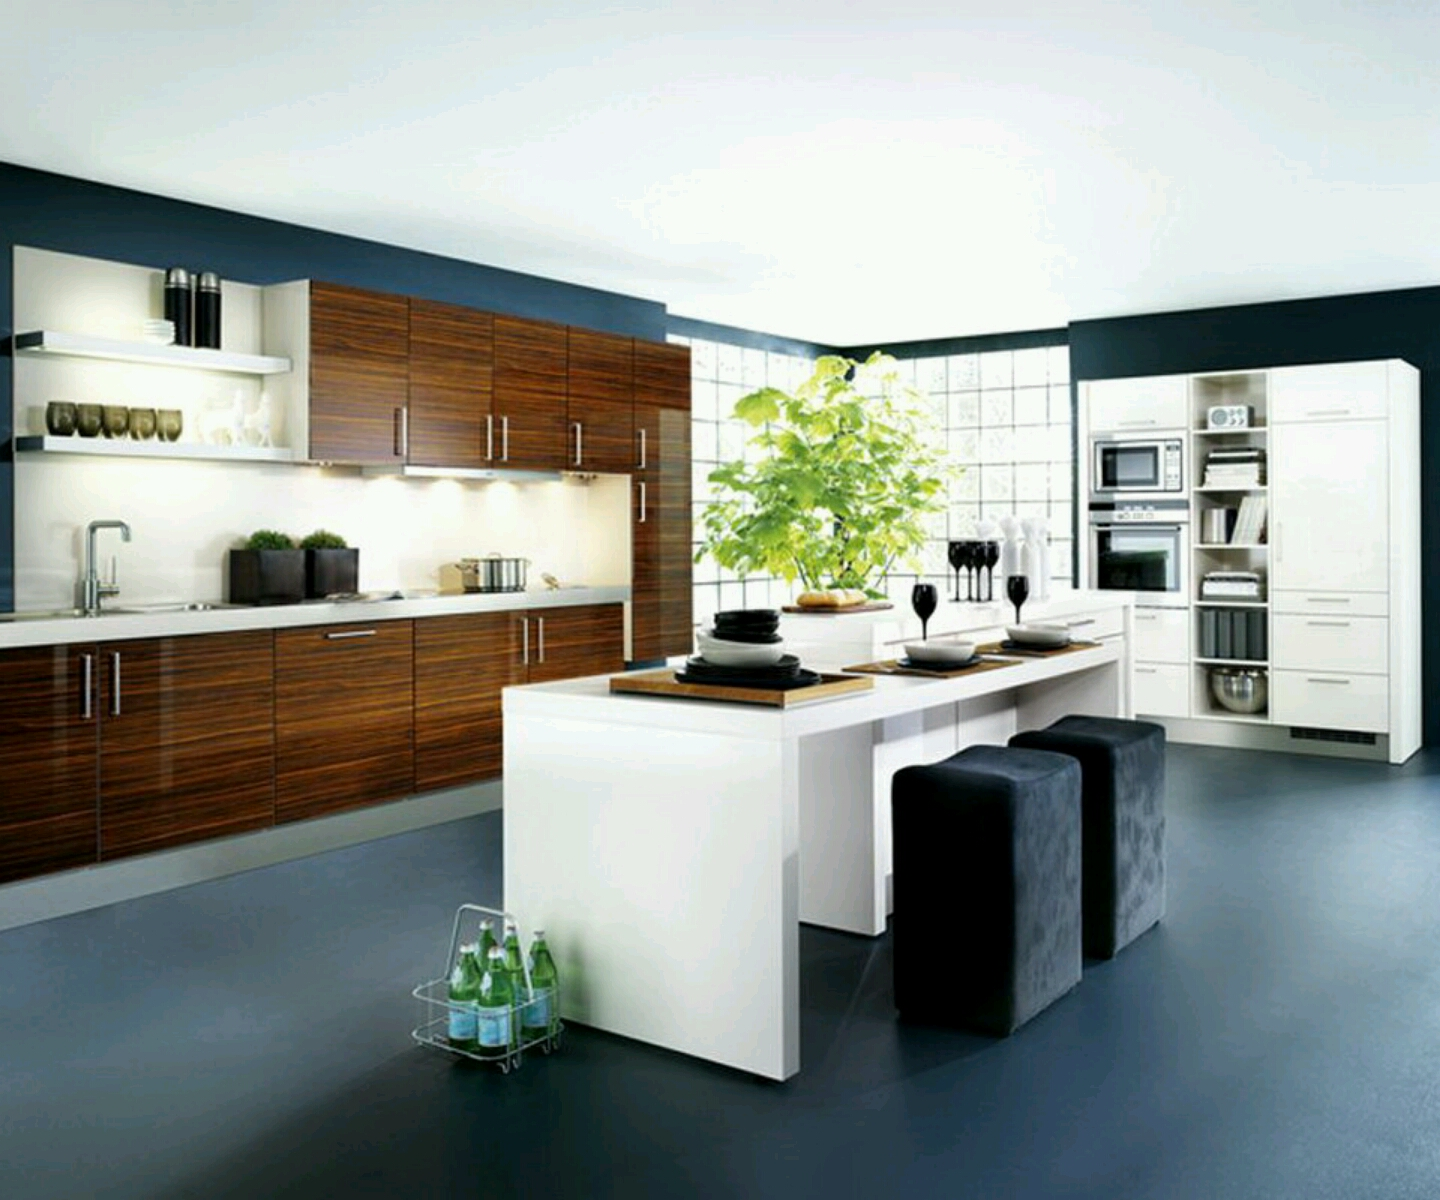 New home designs latest kitchen cabinets designs modern for Modern kitchen design photos